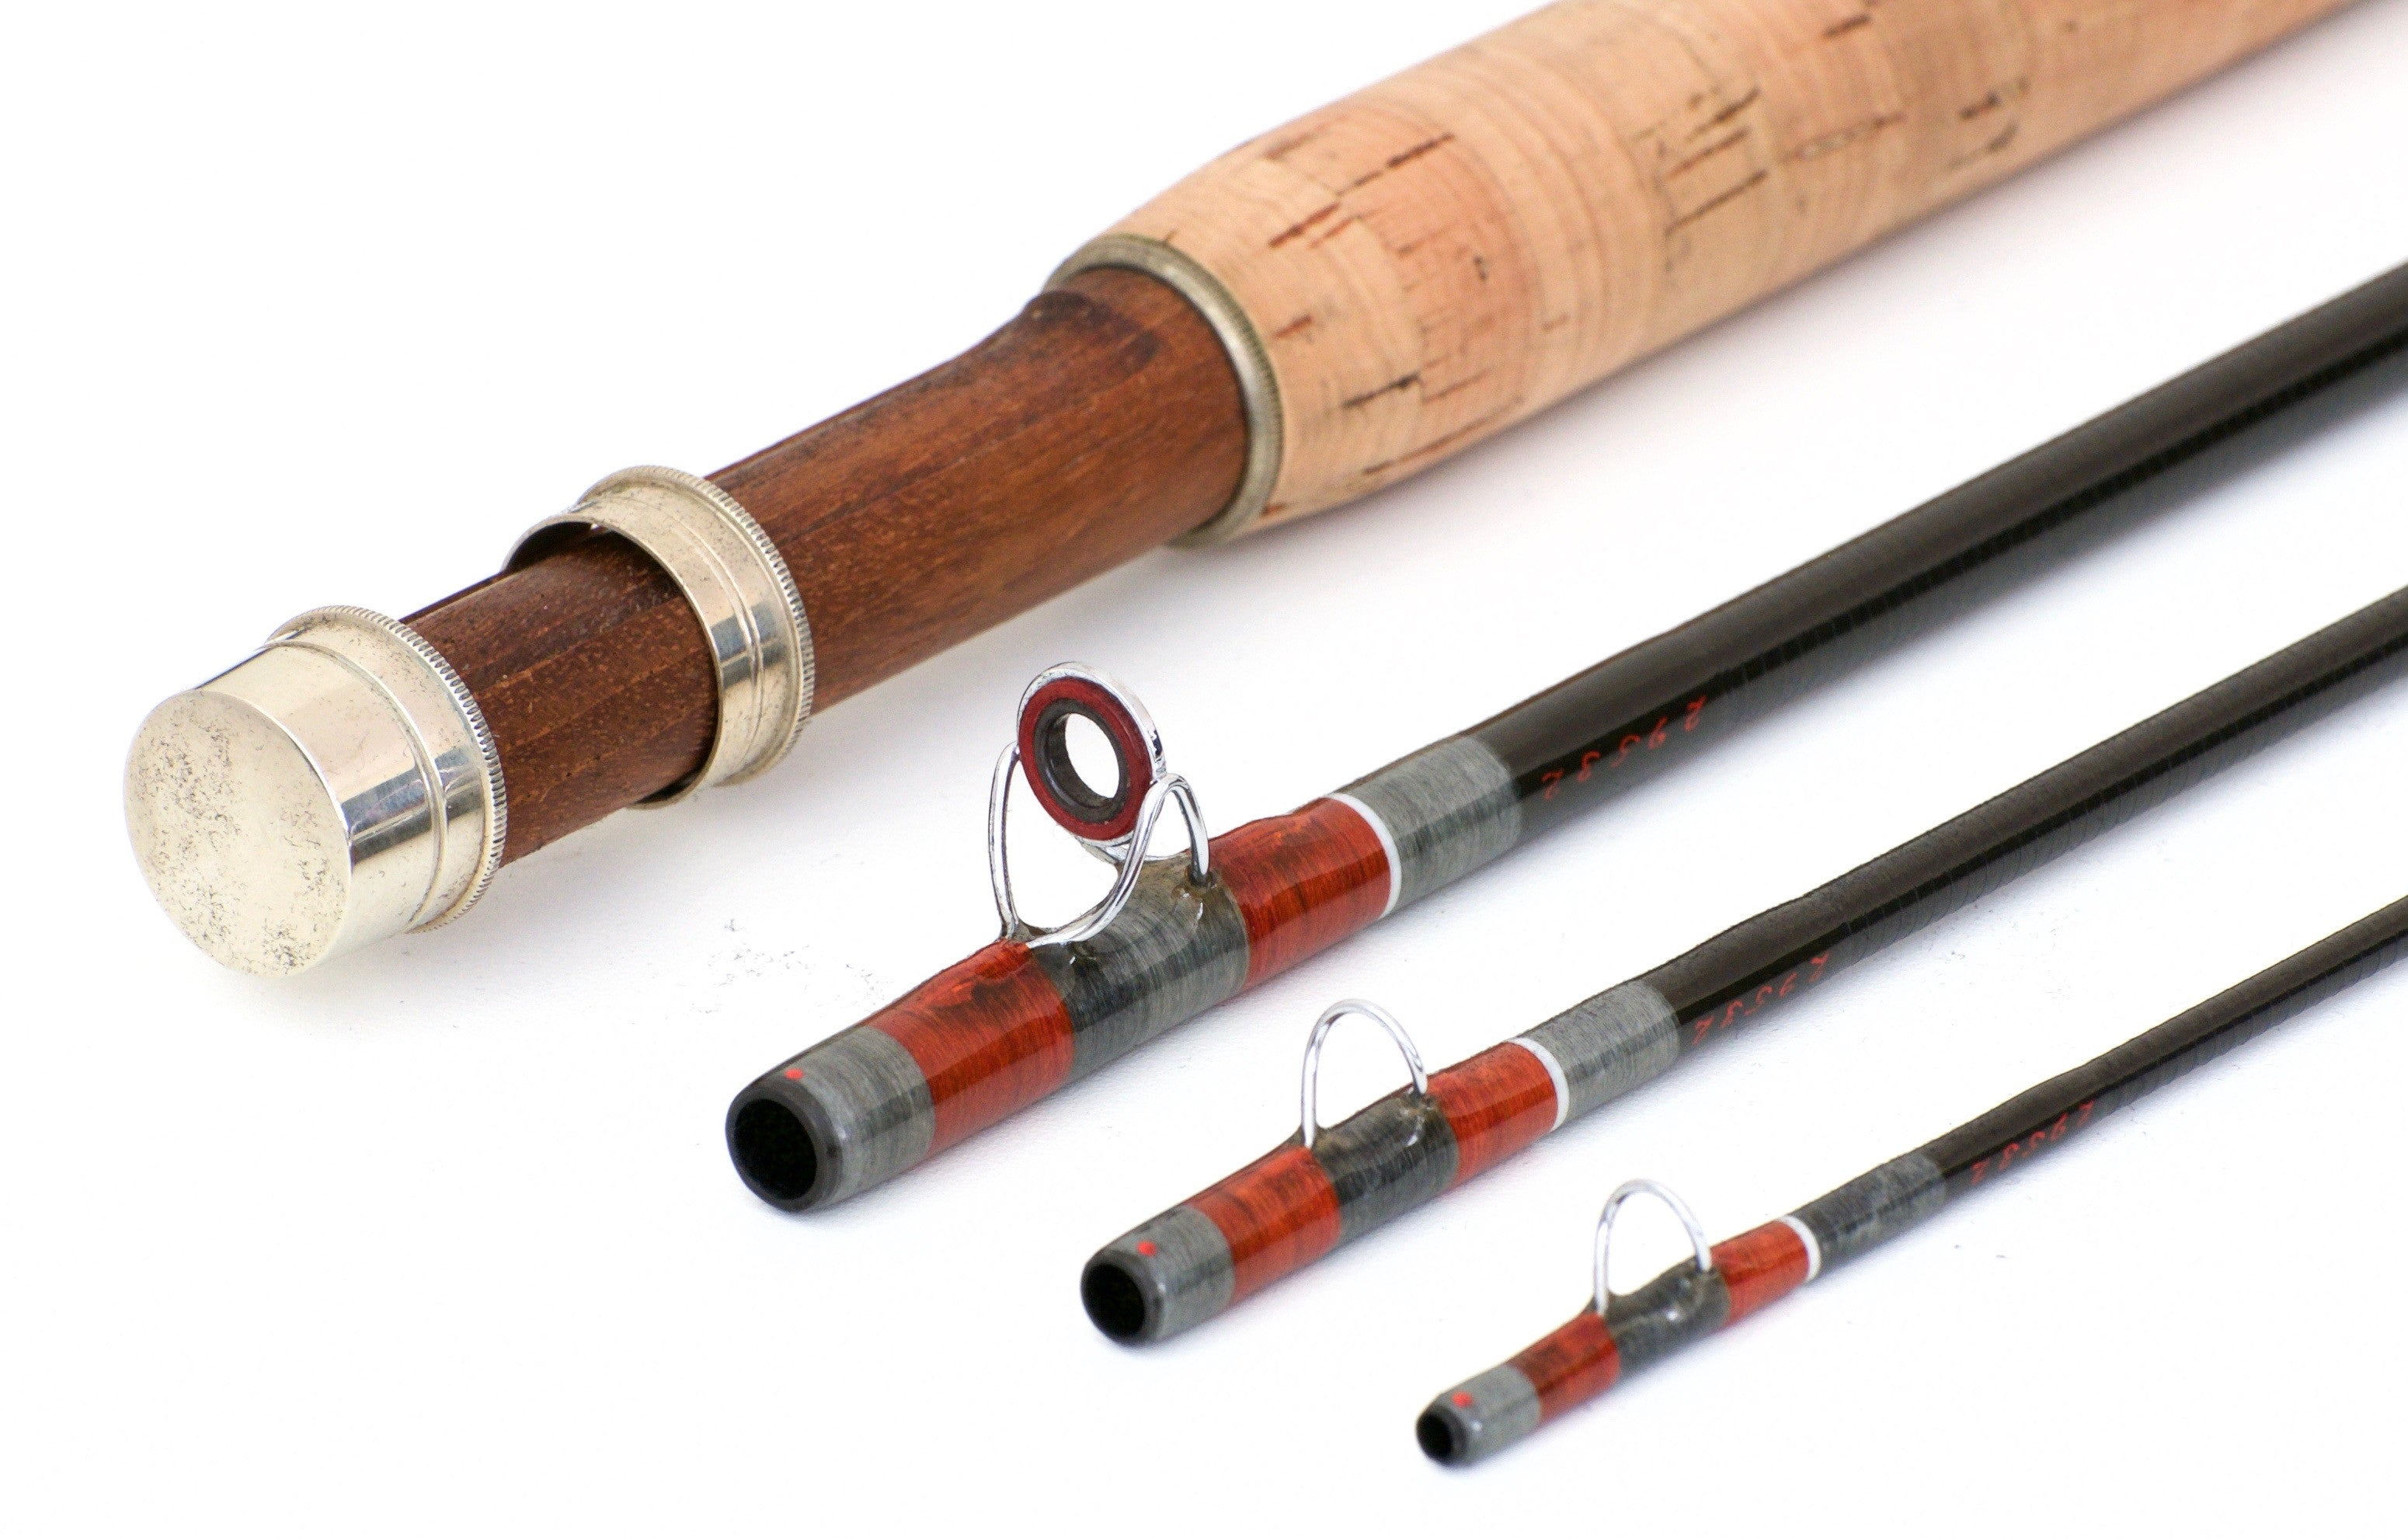 Scott rod co g904 4 graphite rod vintage fly tackle for Graphite fishing rod